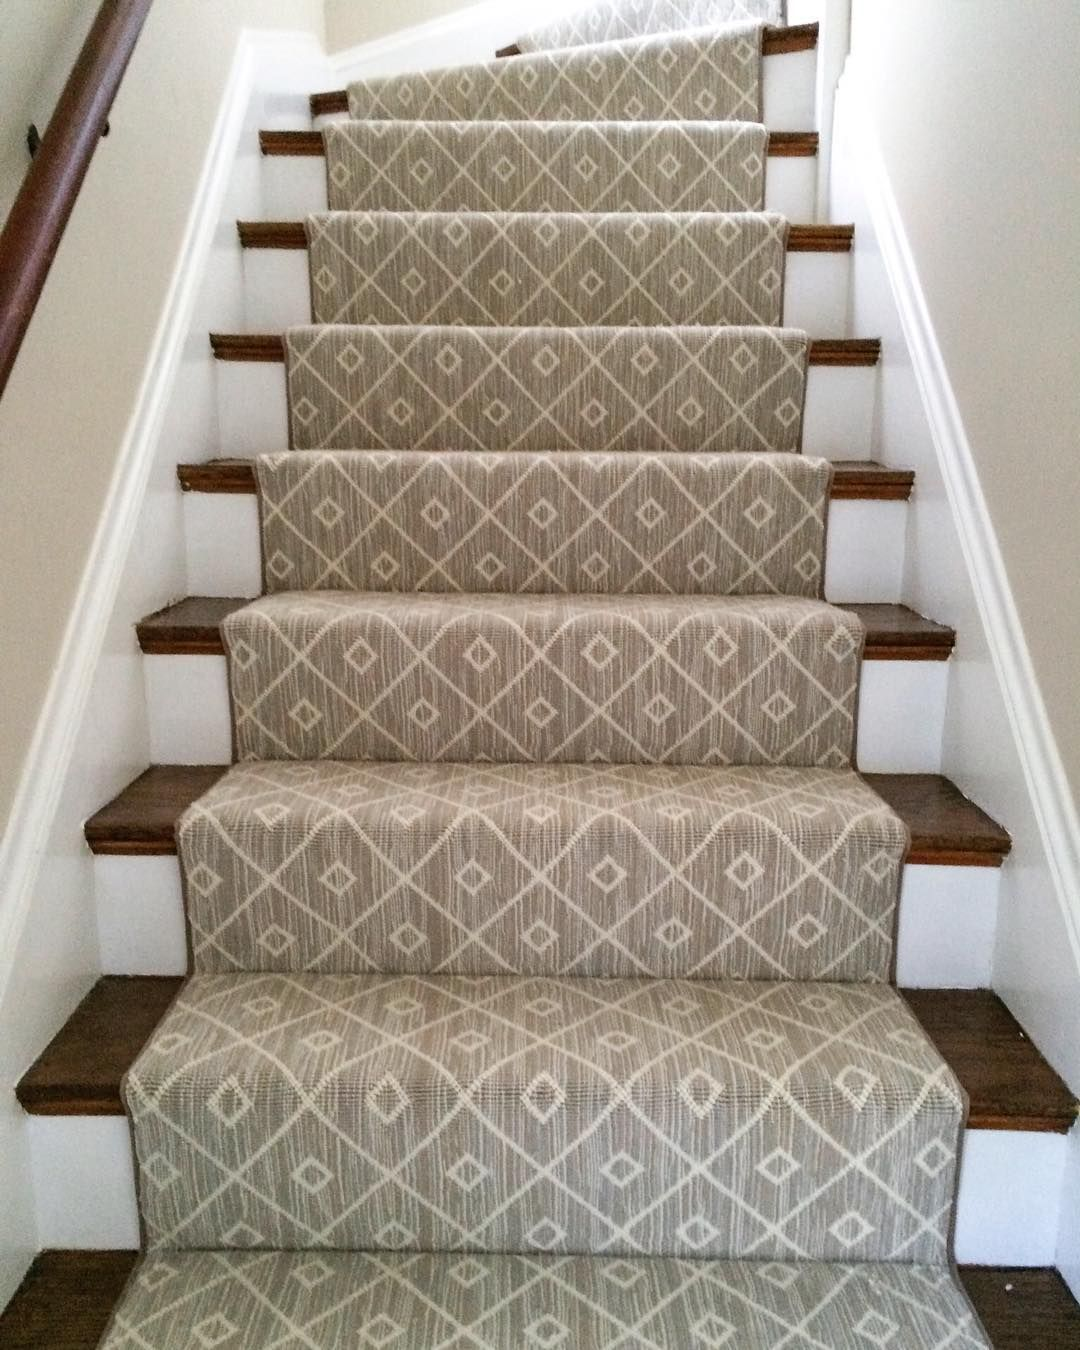 Mia A Woven 100 Wool Carpet Makes For A Beautiful | Best Rug For Stairs